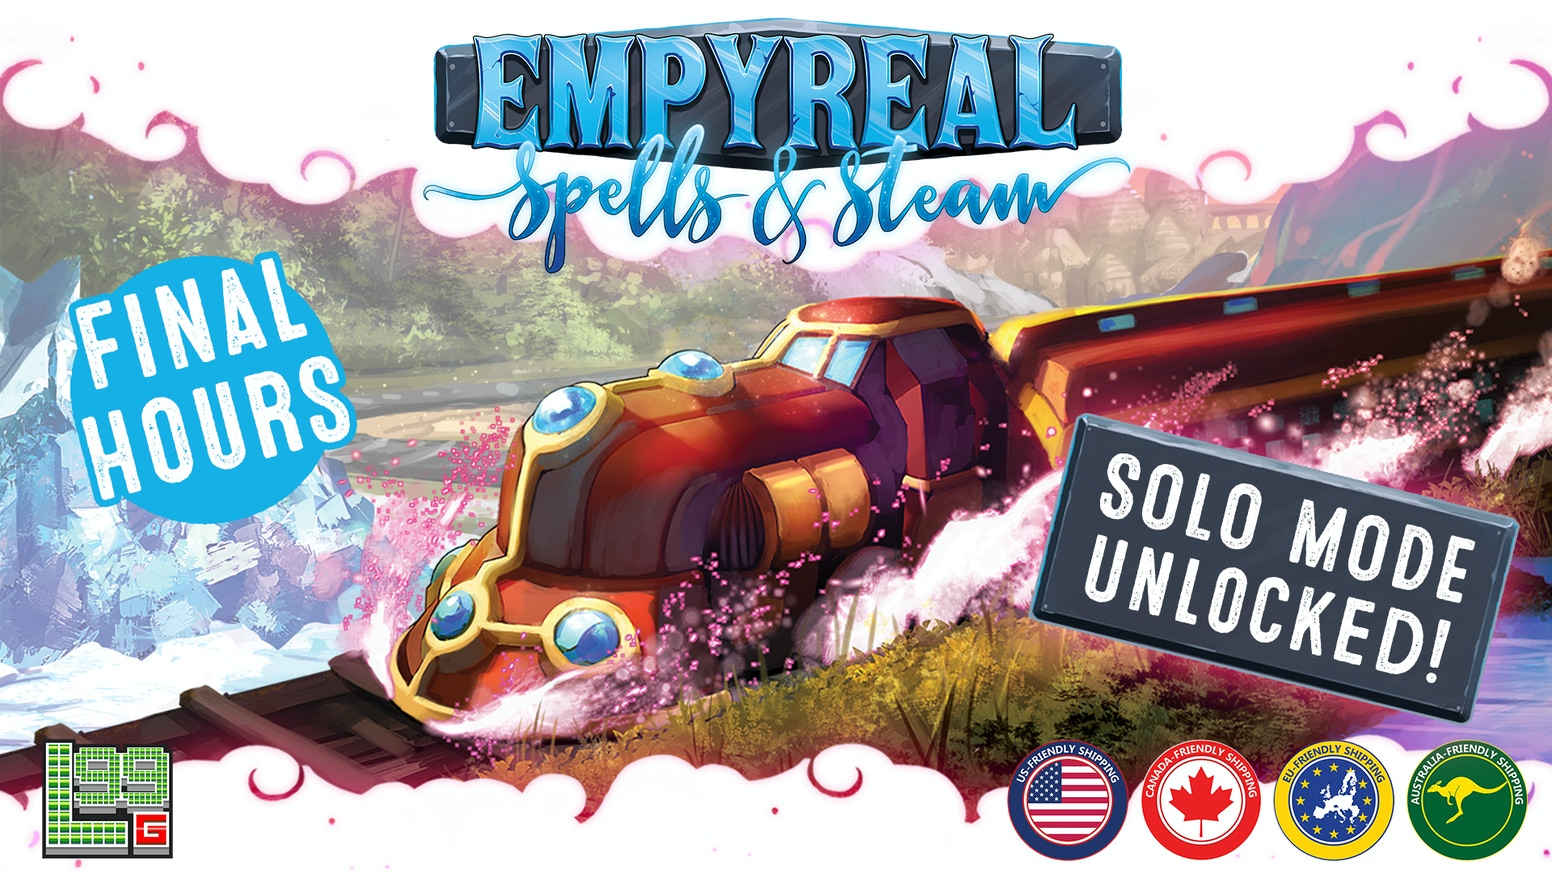 Empyreal: Spells & Steam - A Fantasy Railway-Building Game is the top crowdfunding project launched today. Empyreal: Spells & Steam - A Fantasy Railway-Building Game raised over $220829 from 2388 backers. Other top projects include Mr. Cabbagehead's Garden, Travel with my doggies in Japan! ????????????!, 1 Zillion BC (Canceled)...